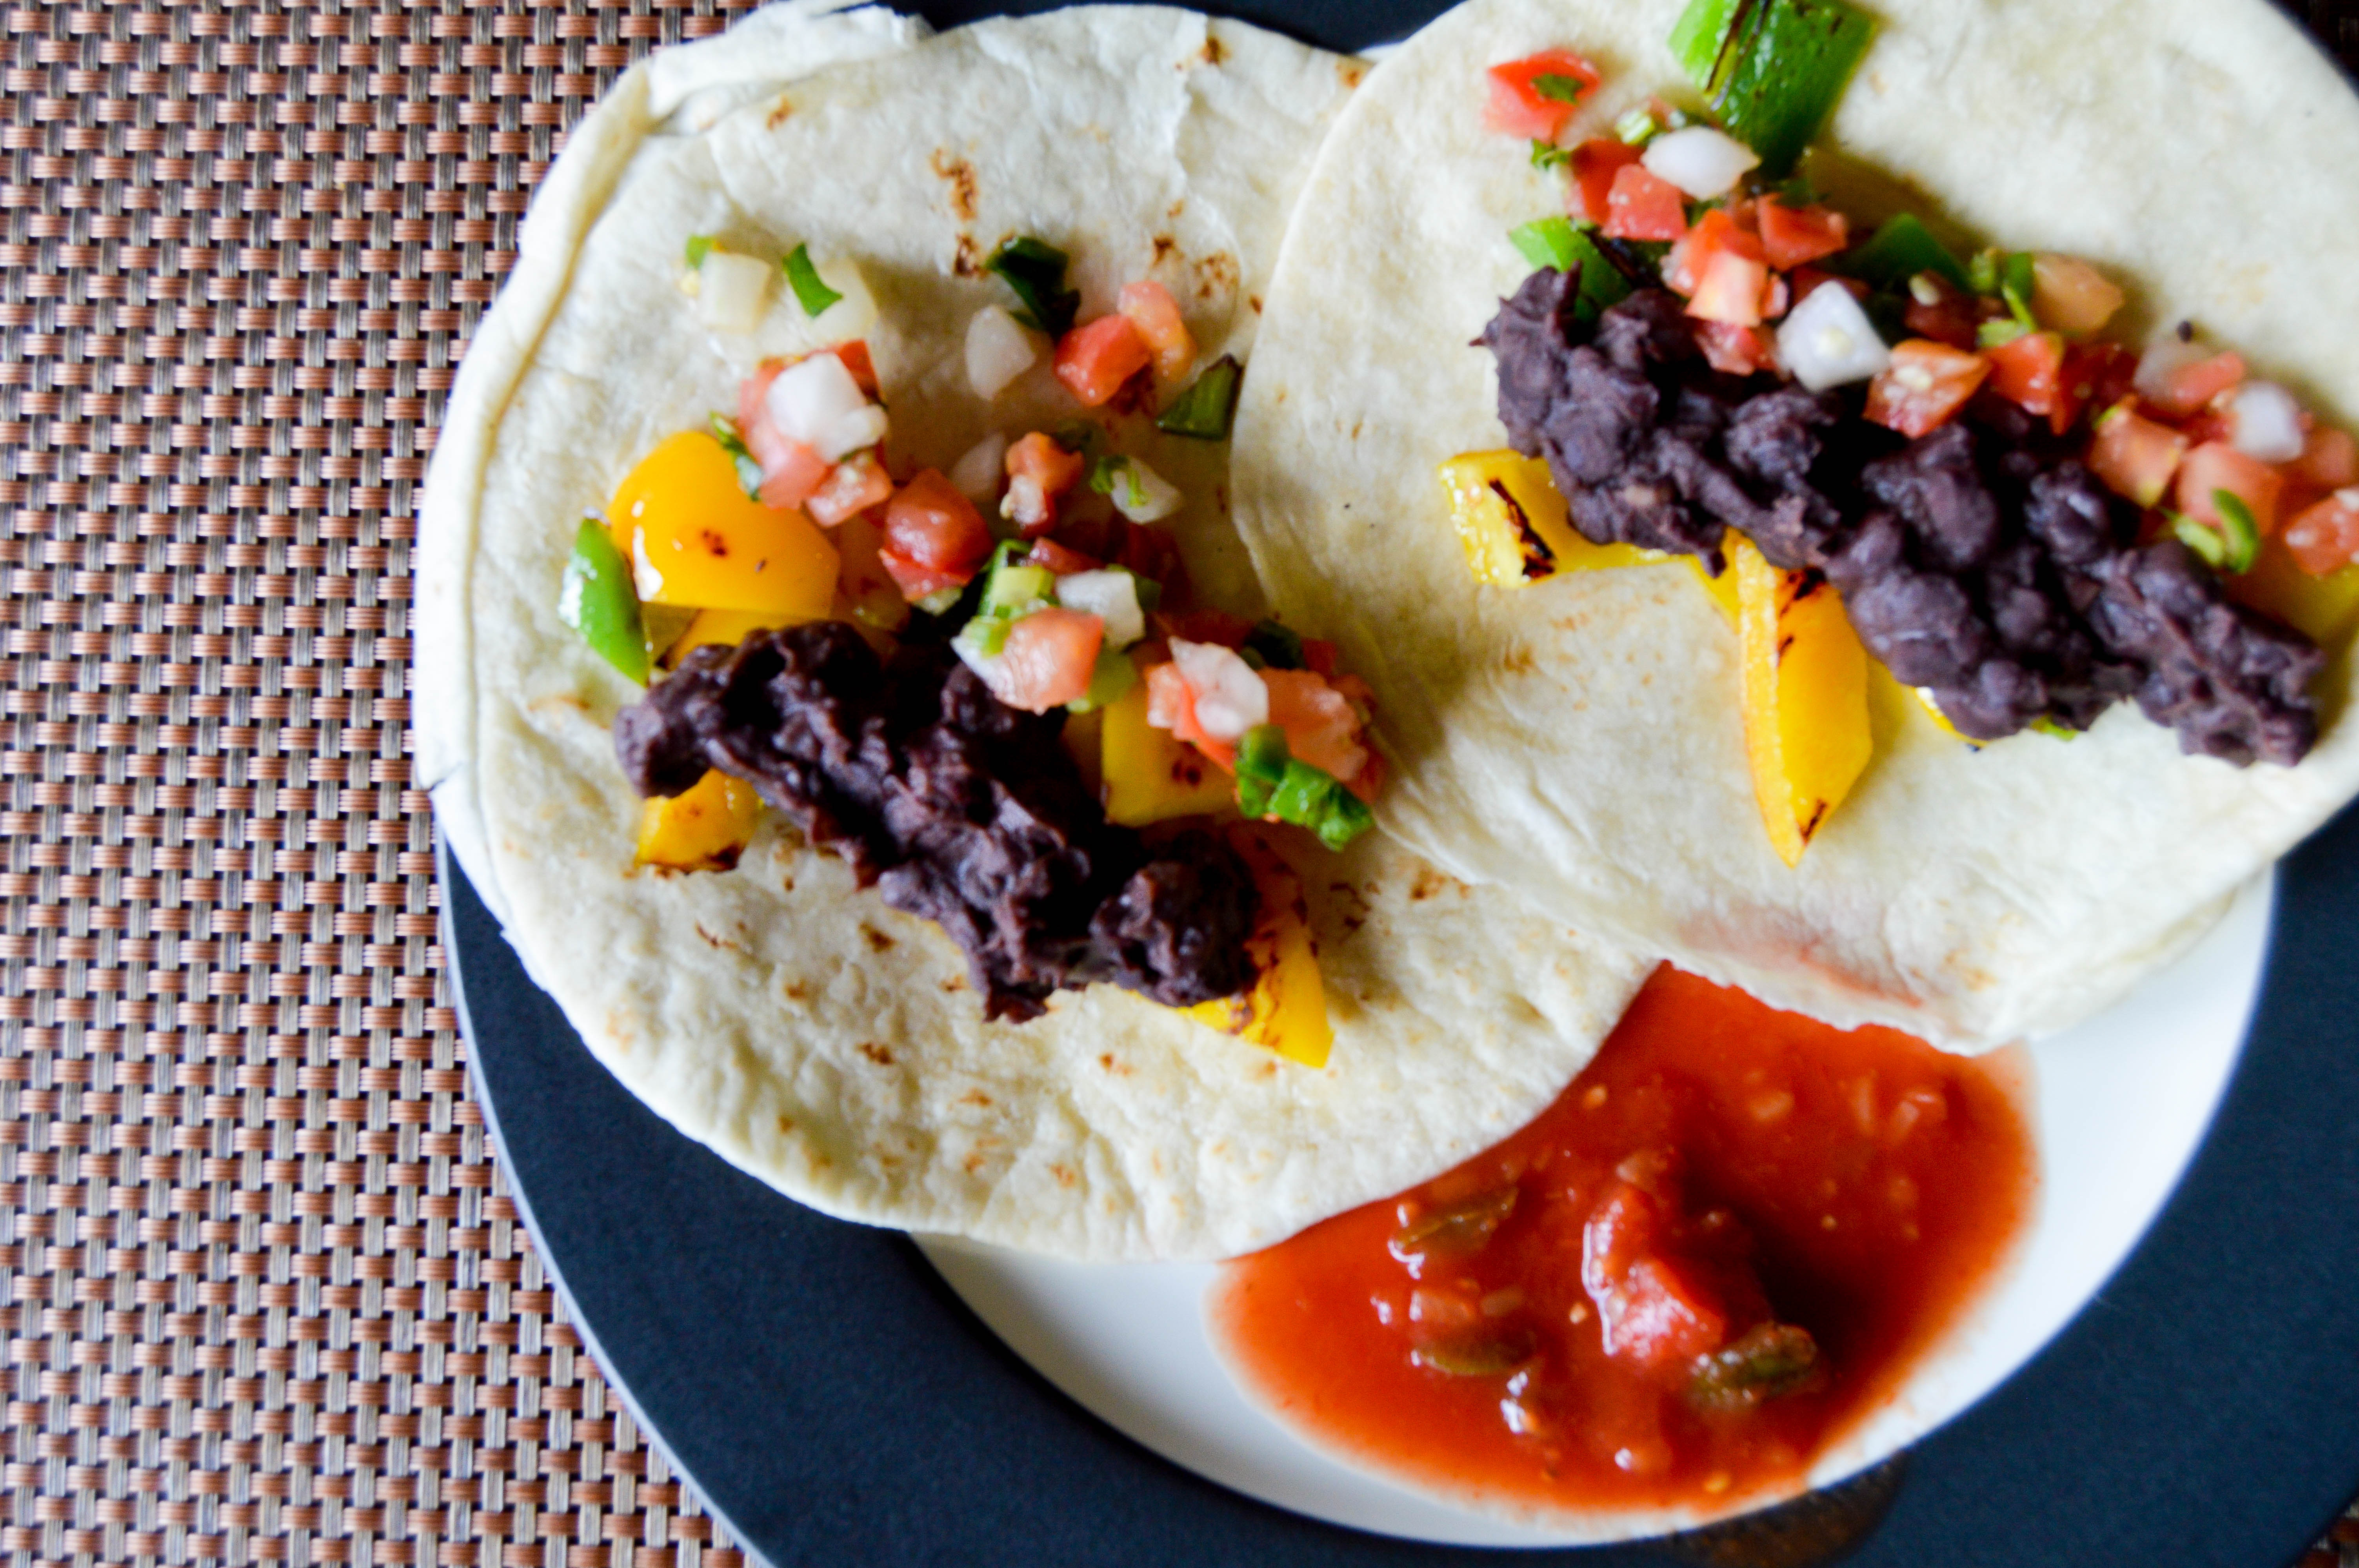 recipe for veggie tacos, healthy lunch ideas